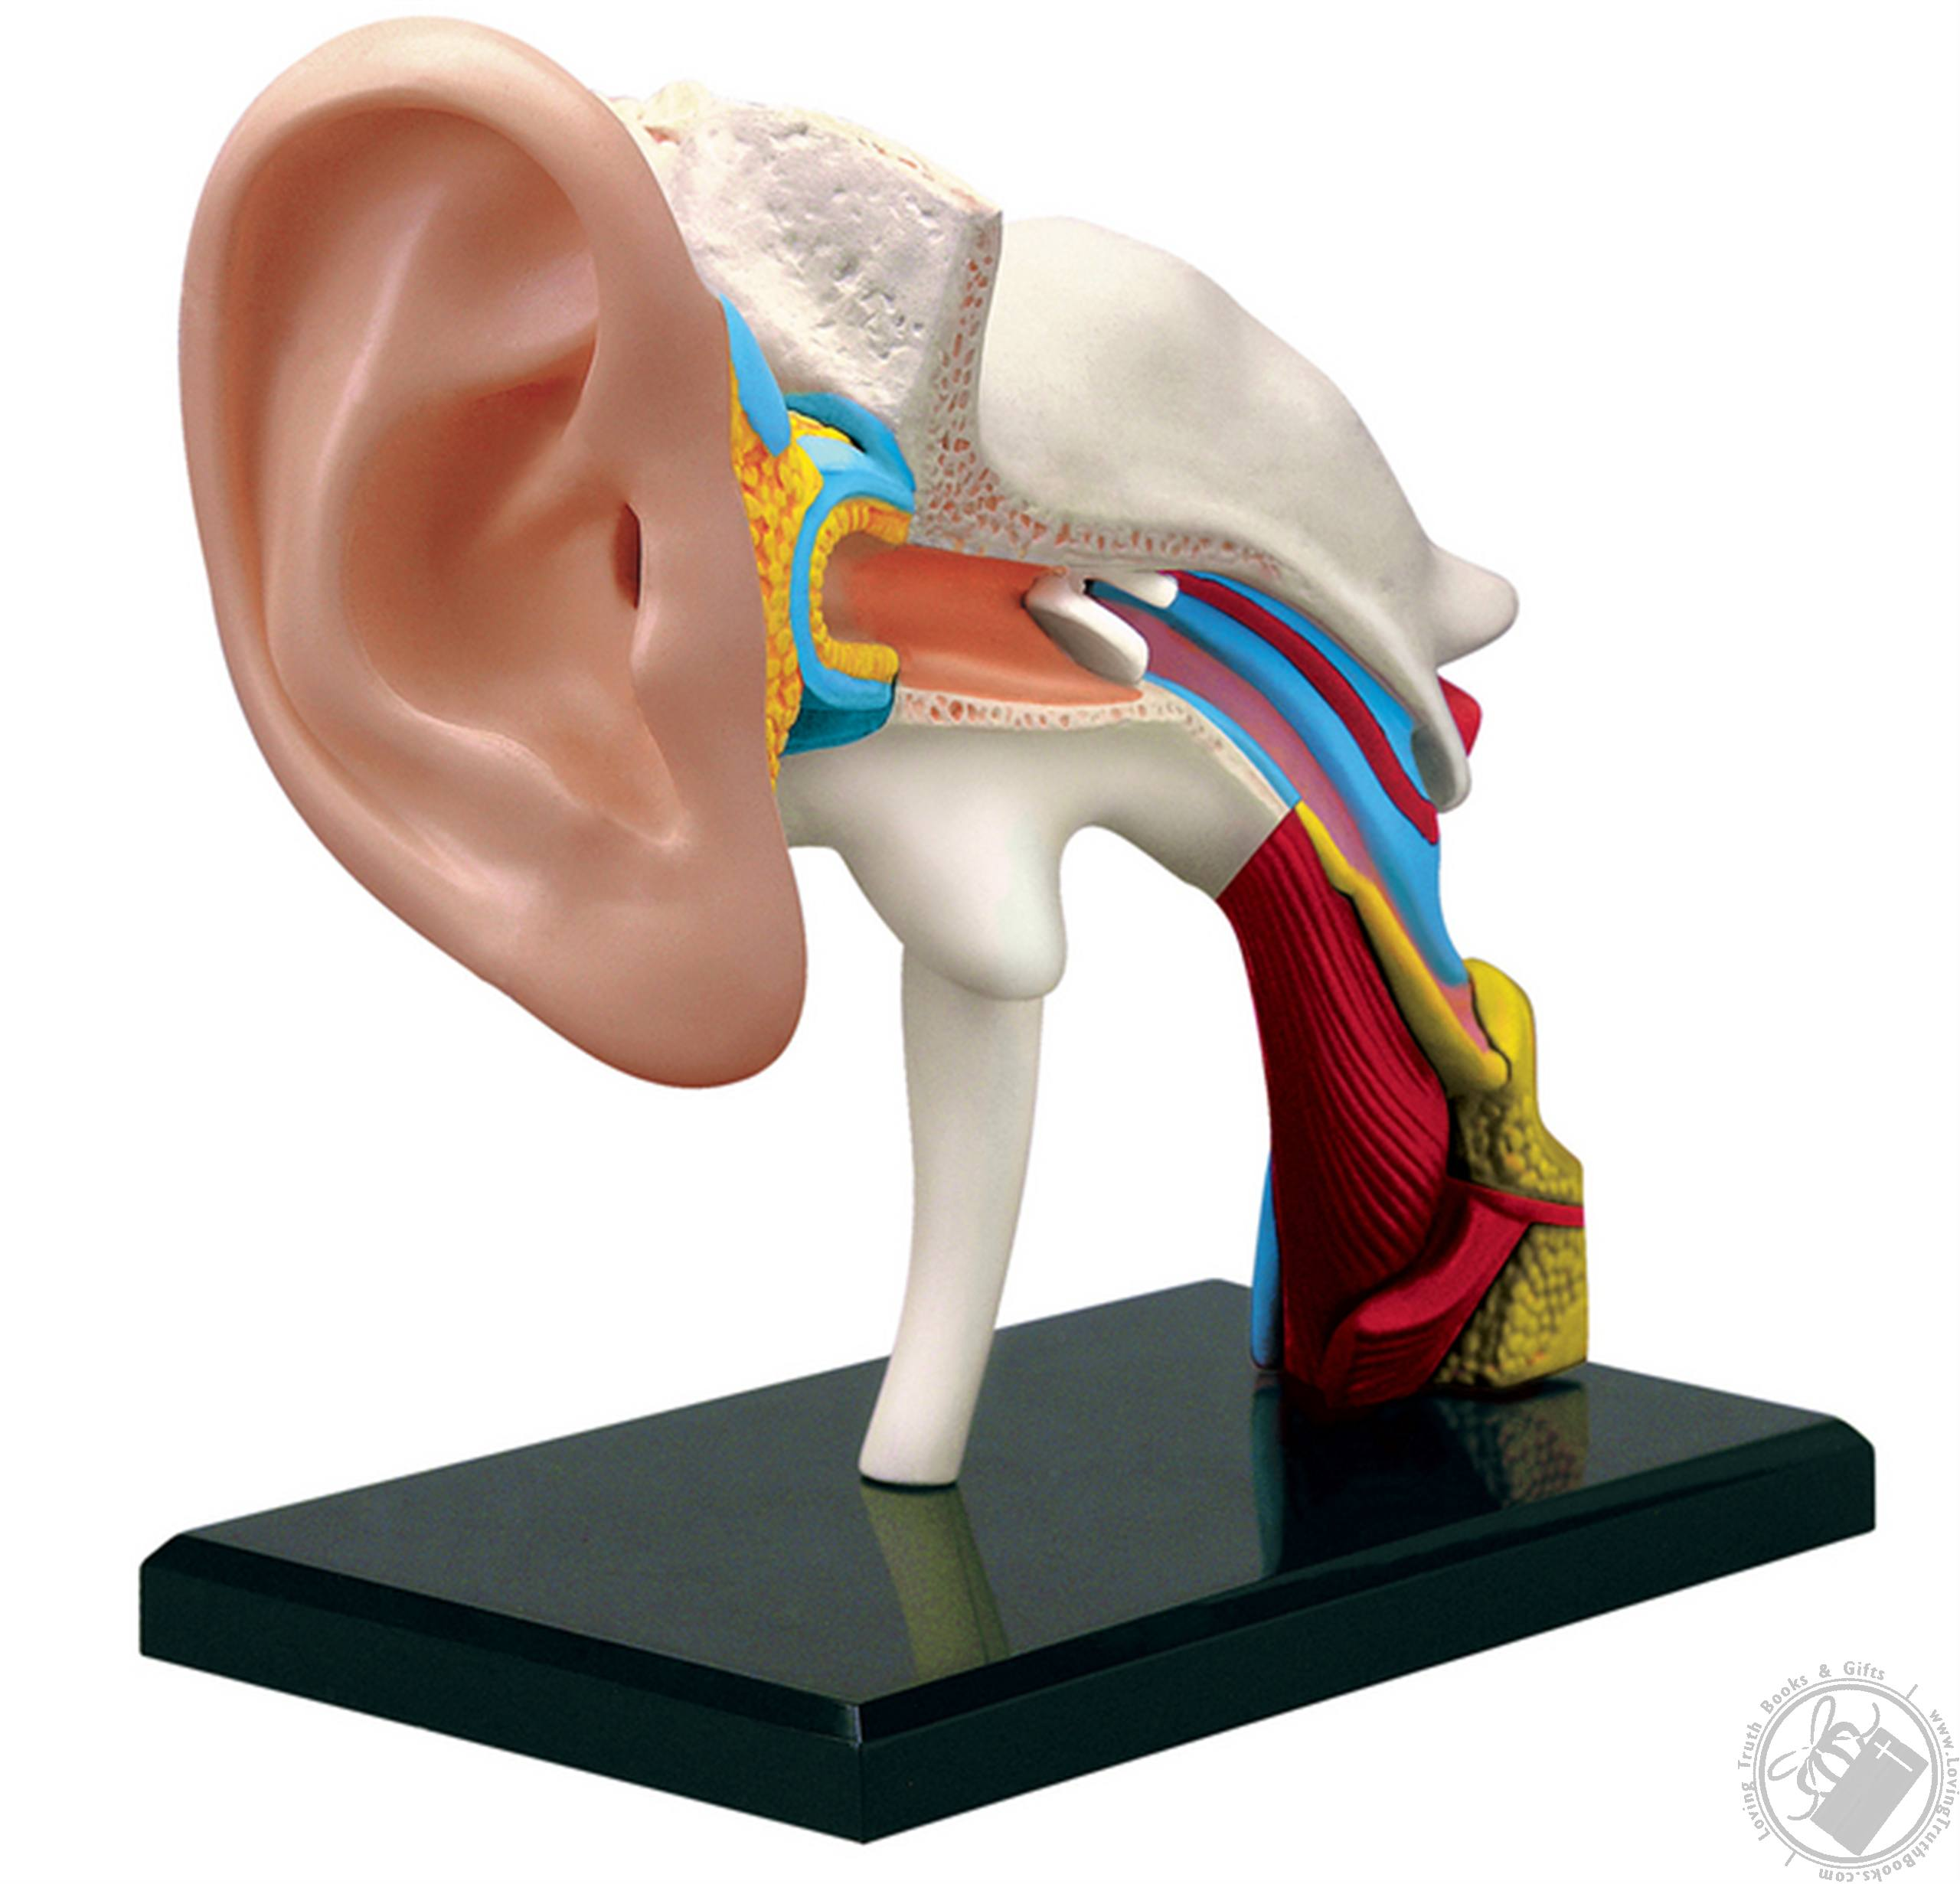 4d Human Anatomy Ear Model 22 Pieces For Ages 8 And Up Biology